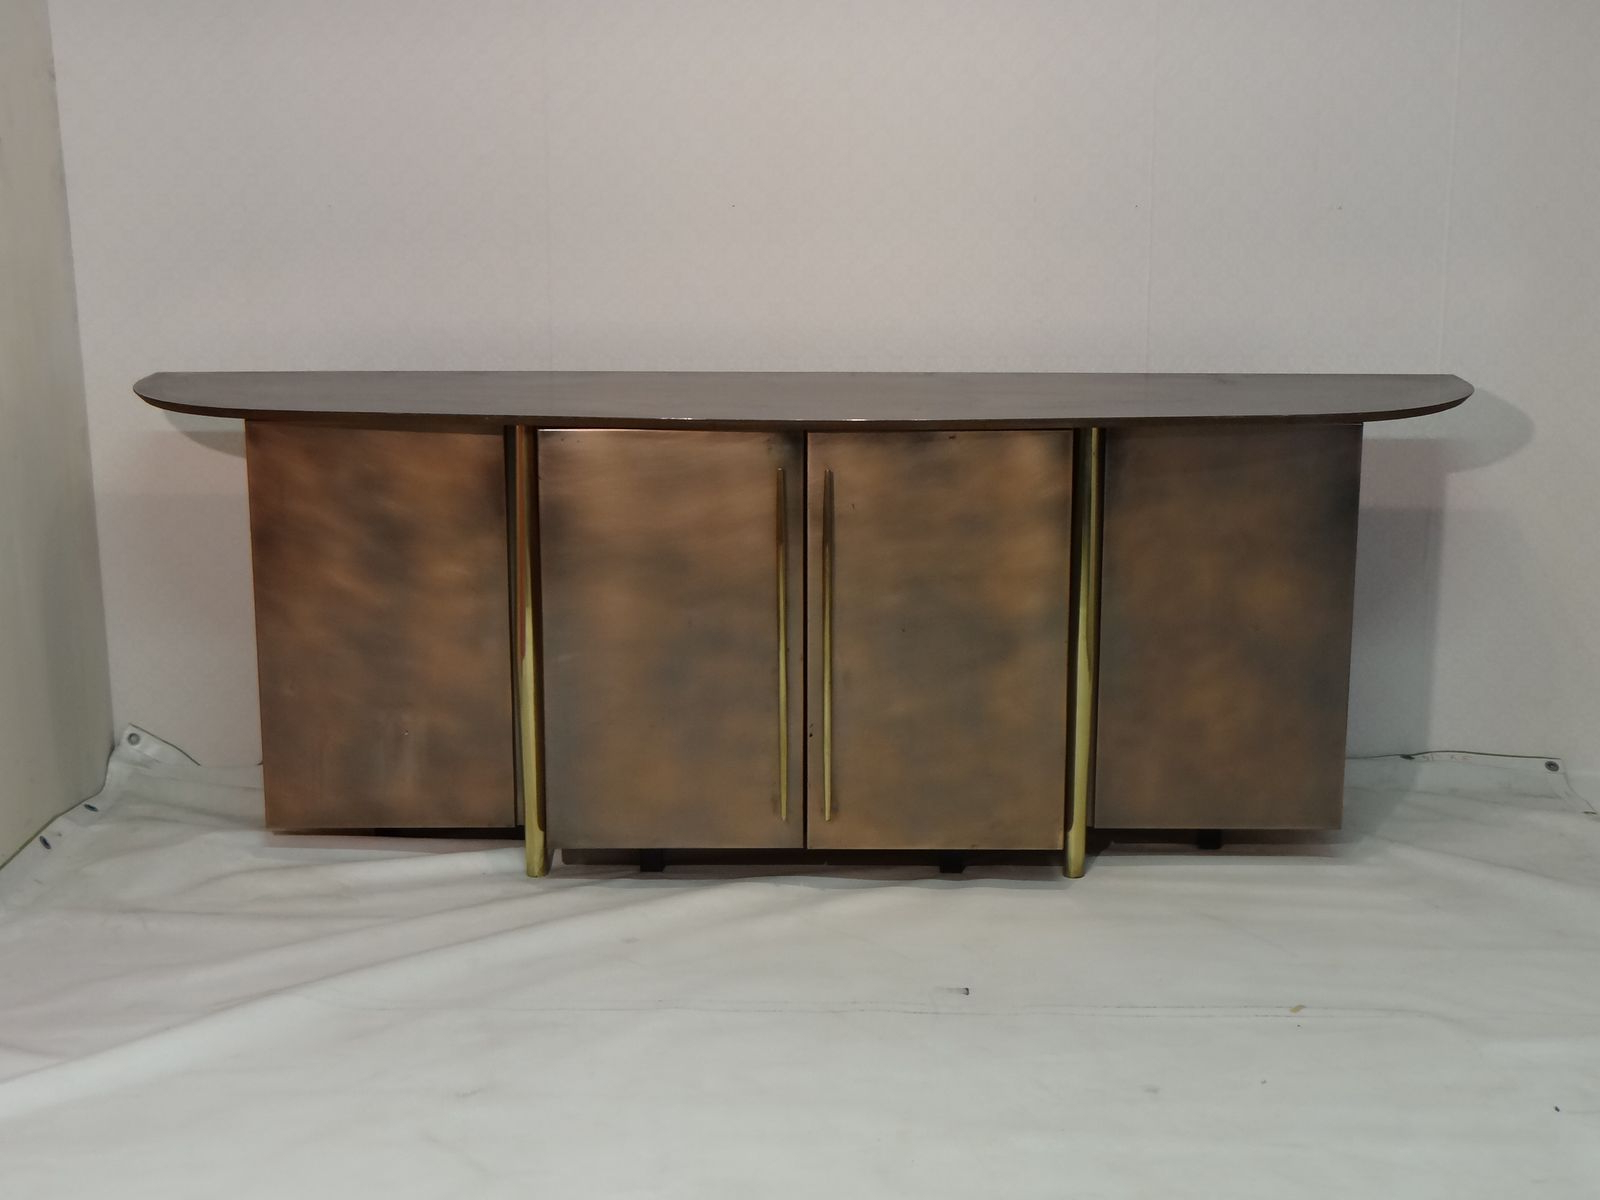 Newest Aged Brass Sideboards Regarding Vintage Brass Sideboard From Belgo Chrom For Sale At Pamono (View 13 of 20)